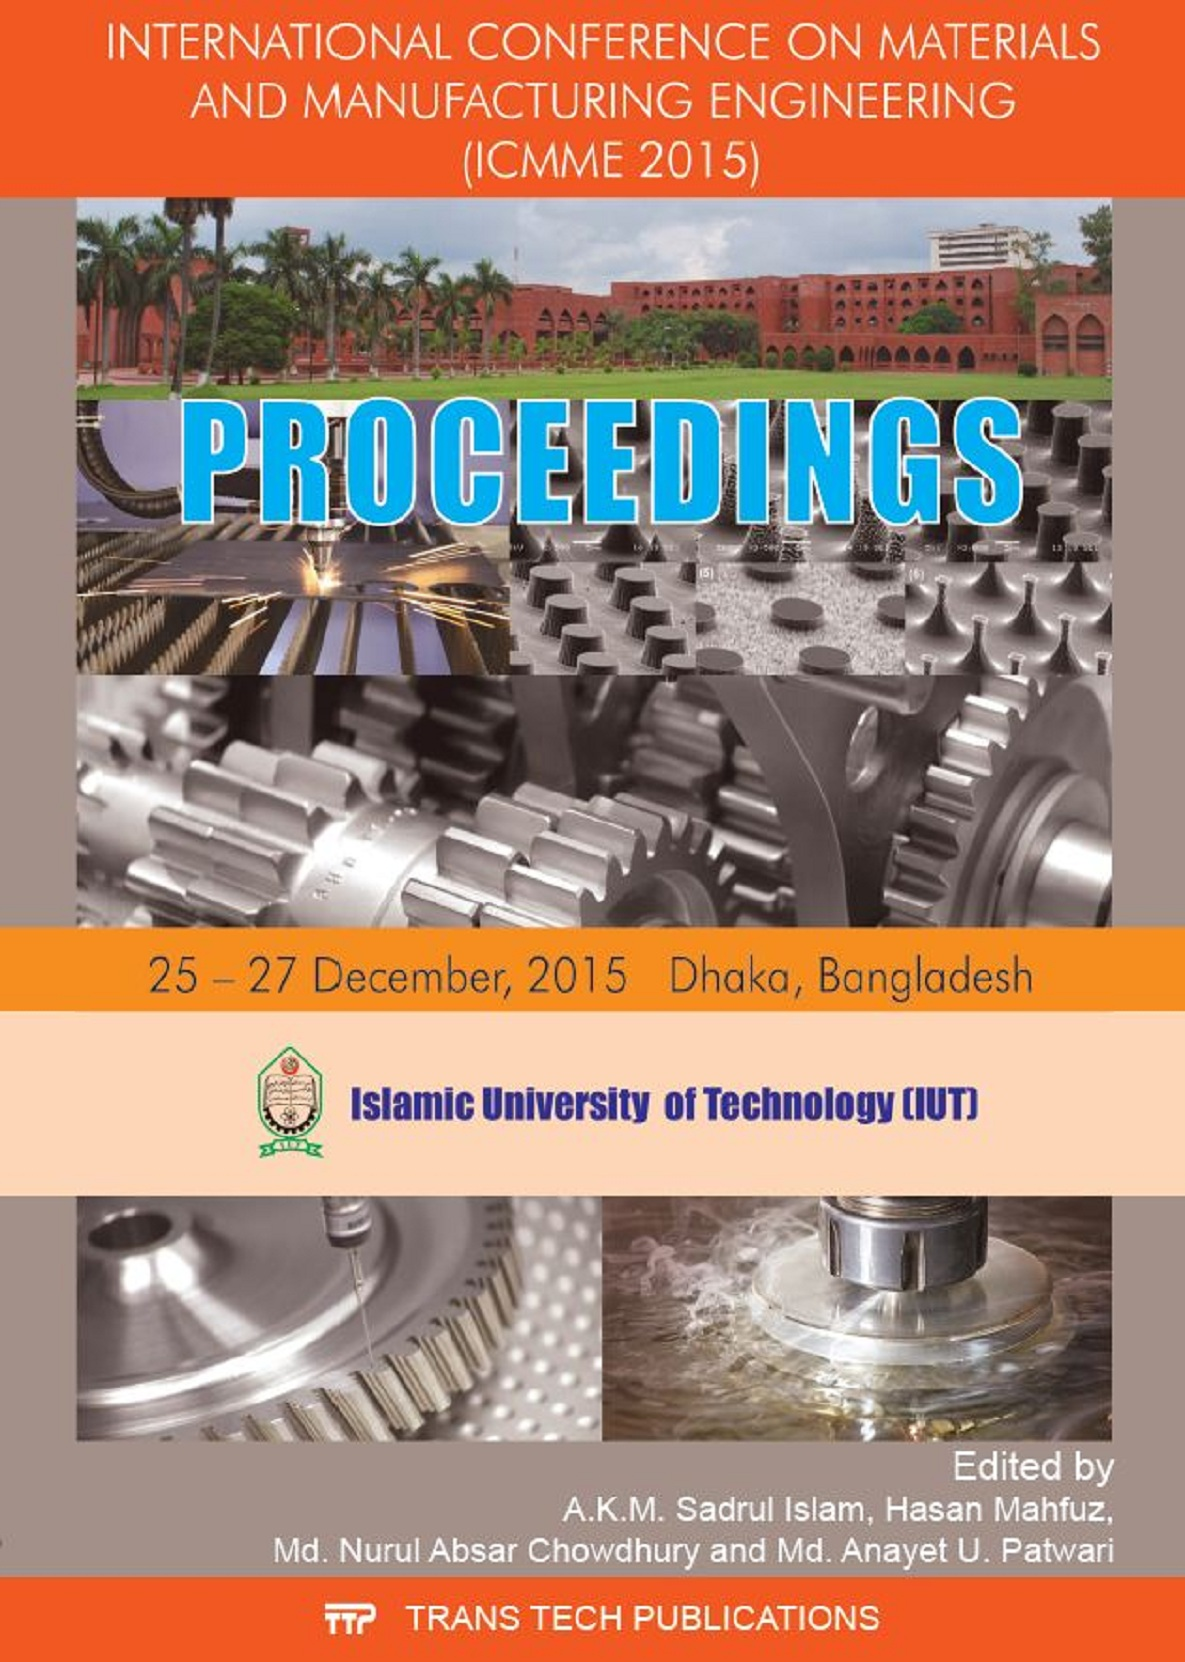 International Conference on Materials and Manufacturing Engineering